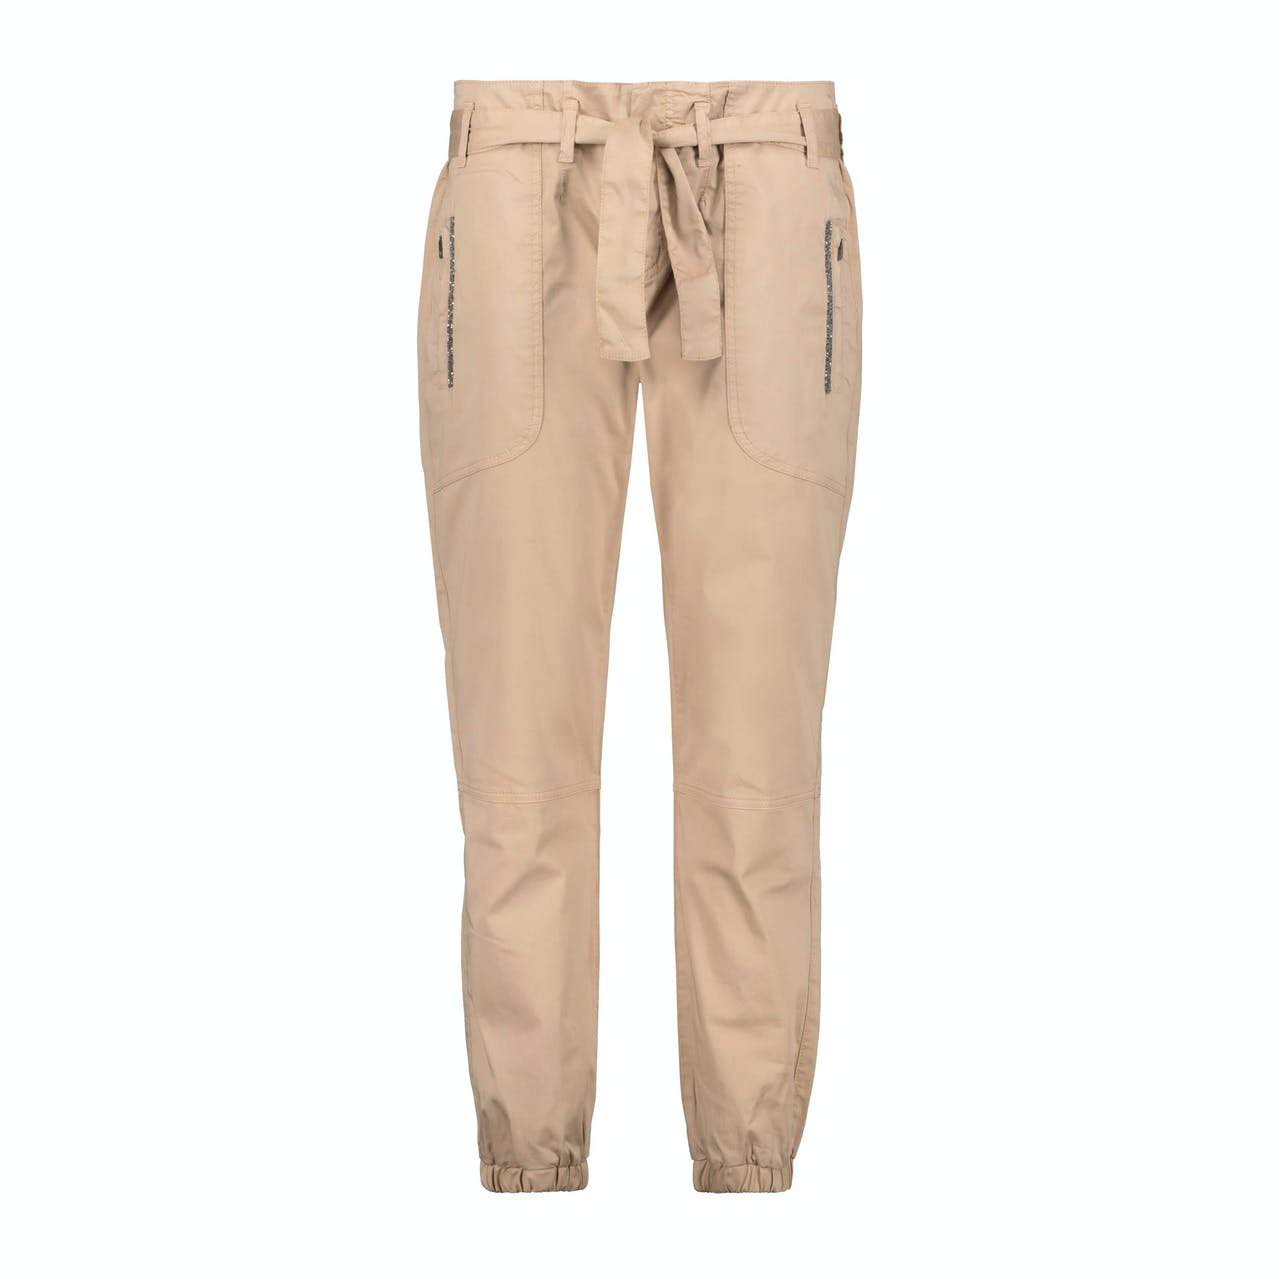 Hose - Regular Fit - unifarben